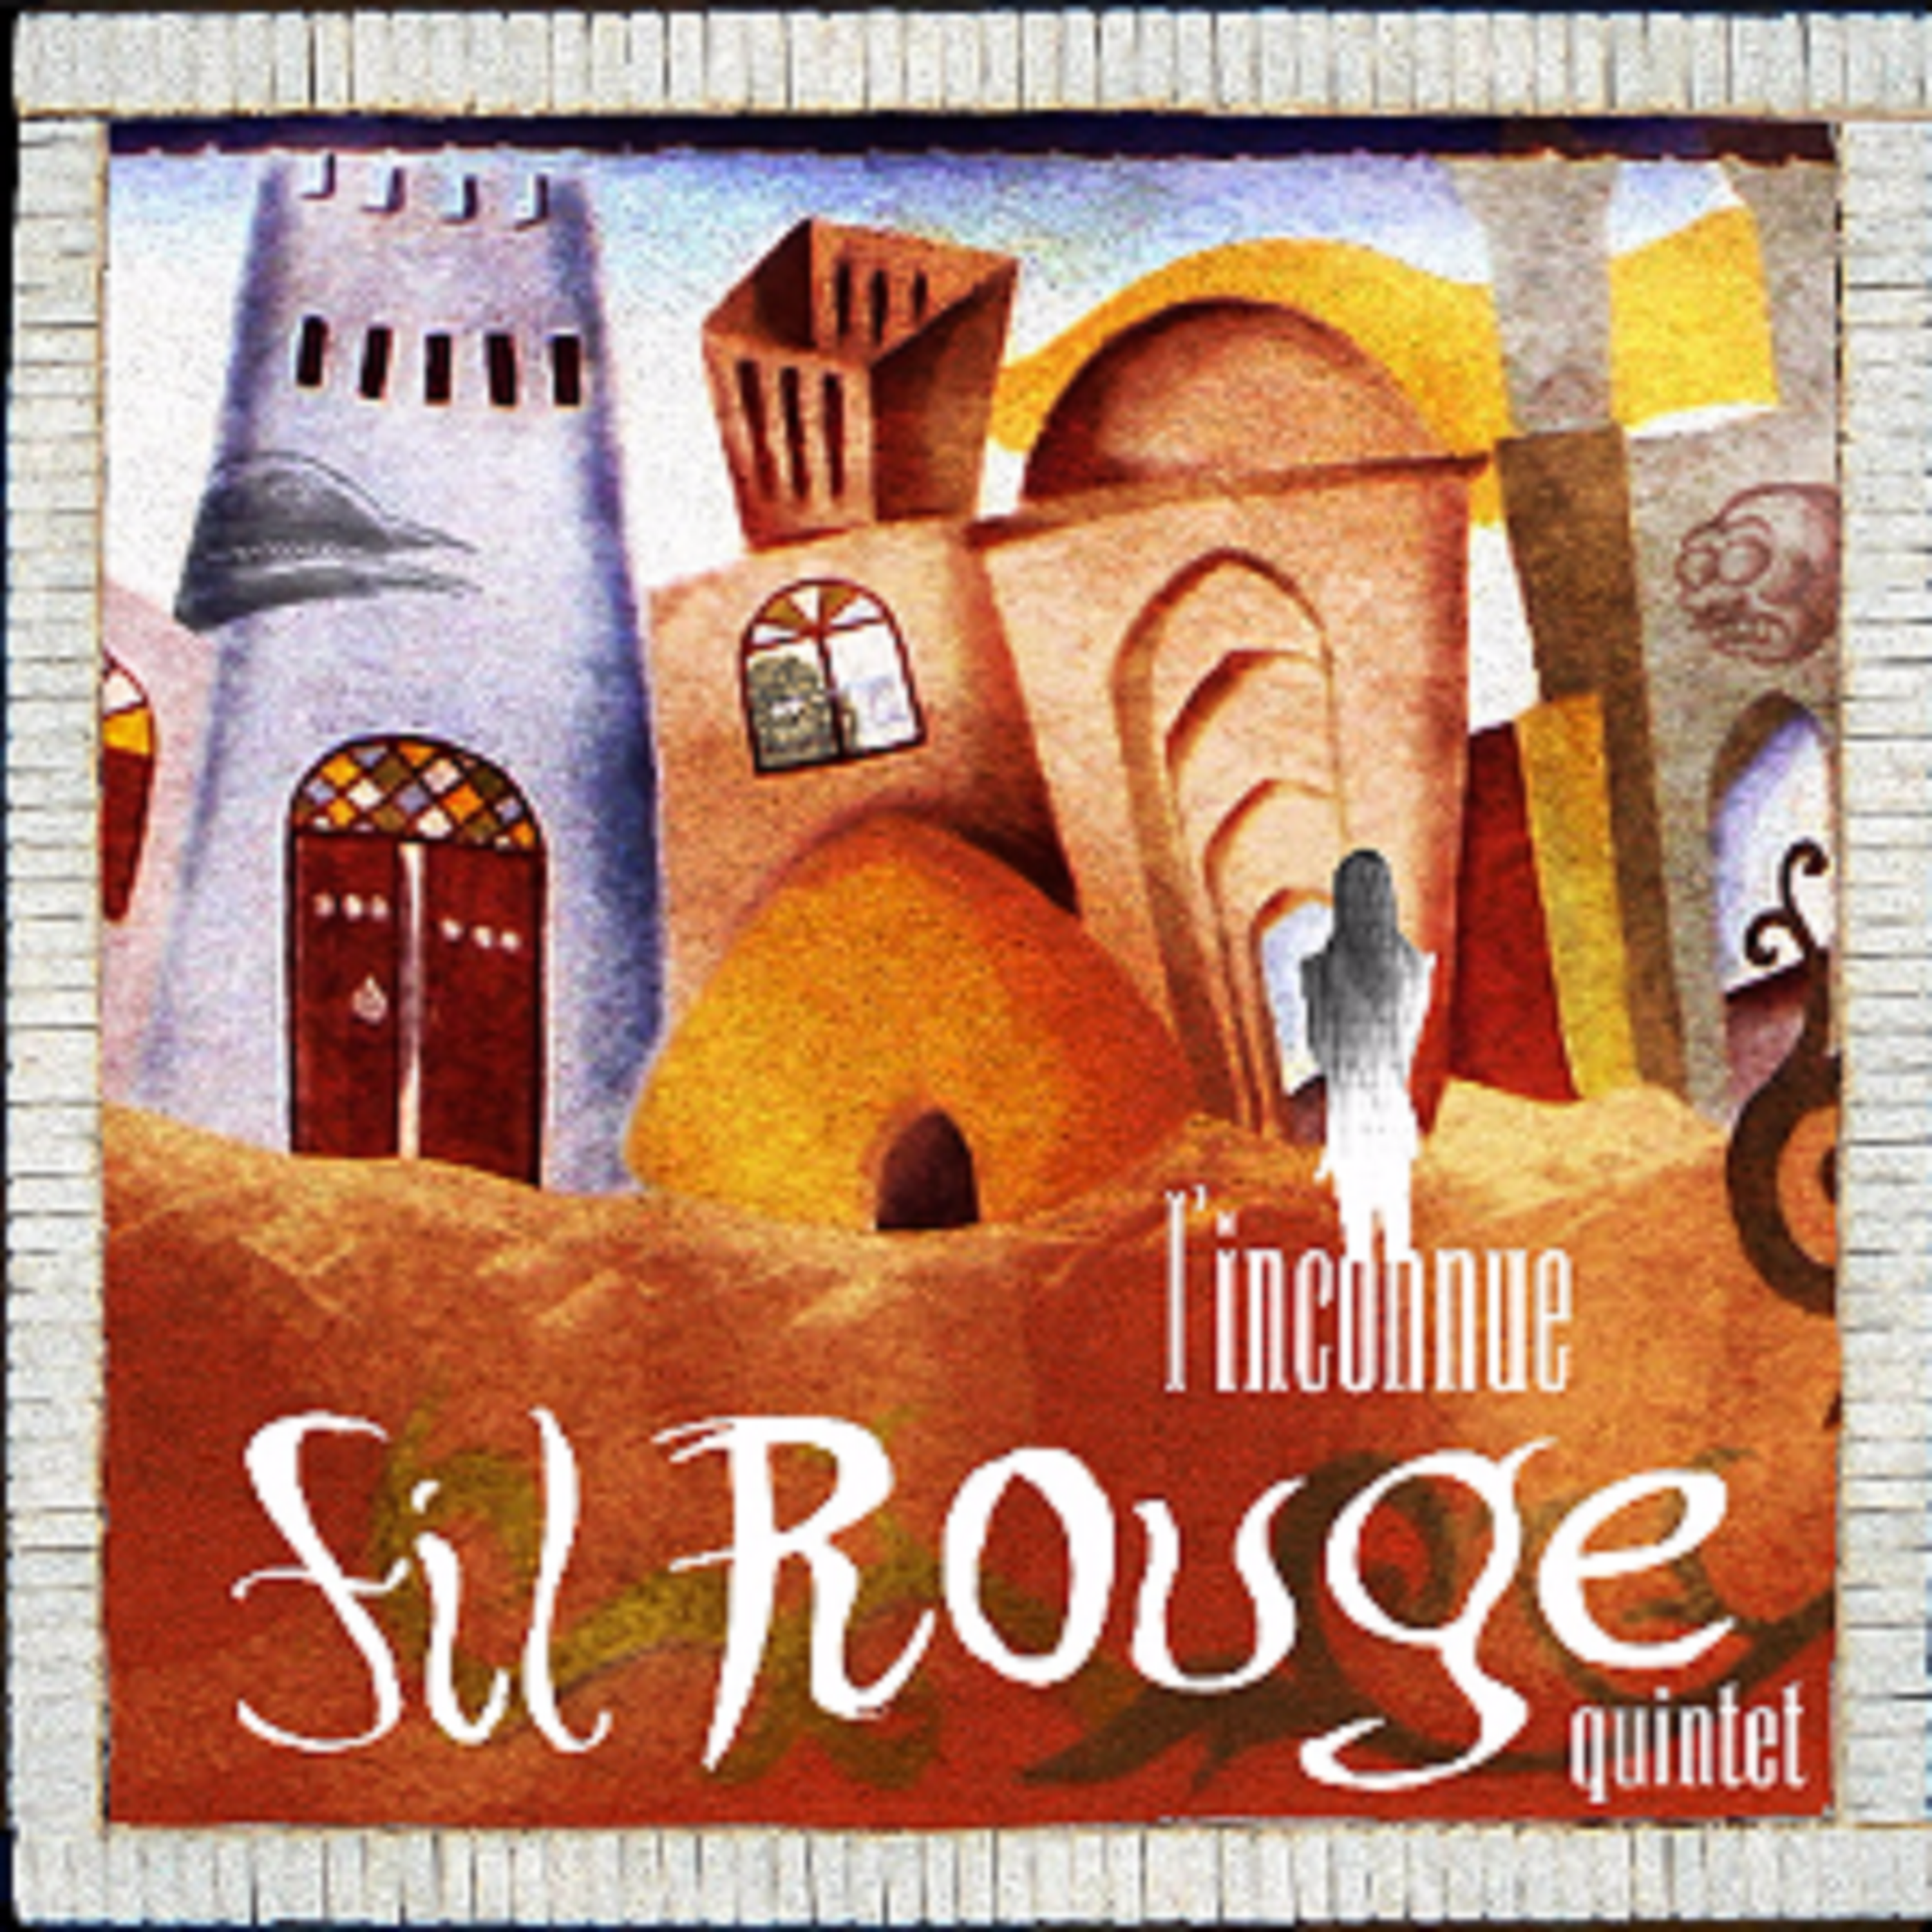 1531784567 cover fil rouge 3000 x 3000 pixel